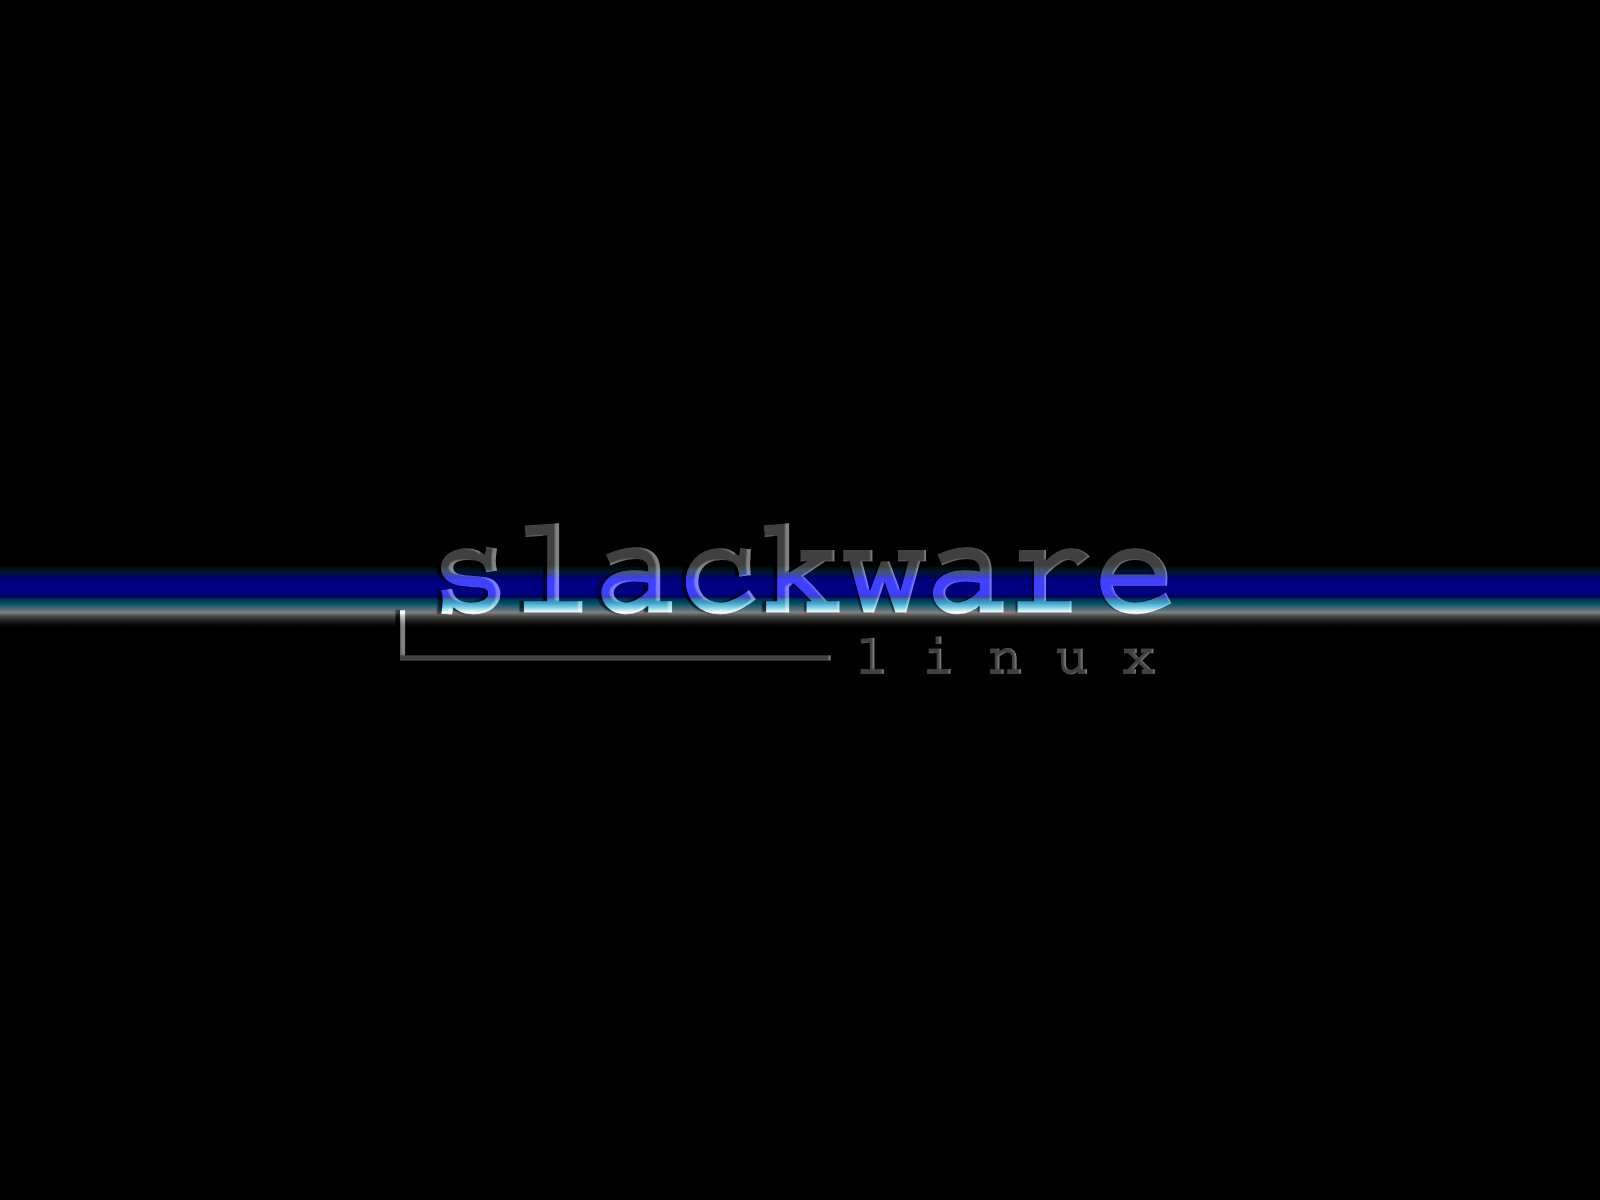 slackware by d413k on DeviantArt